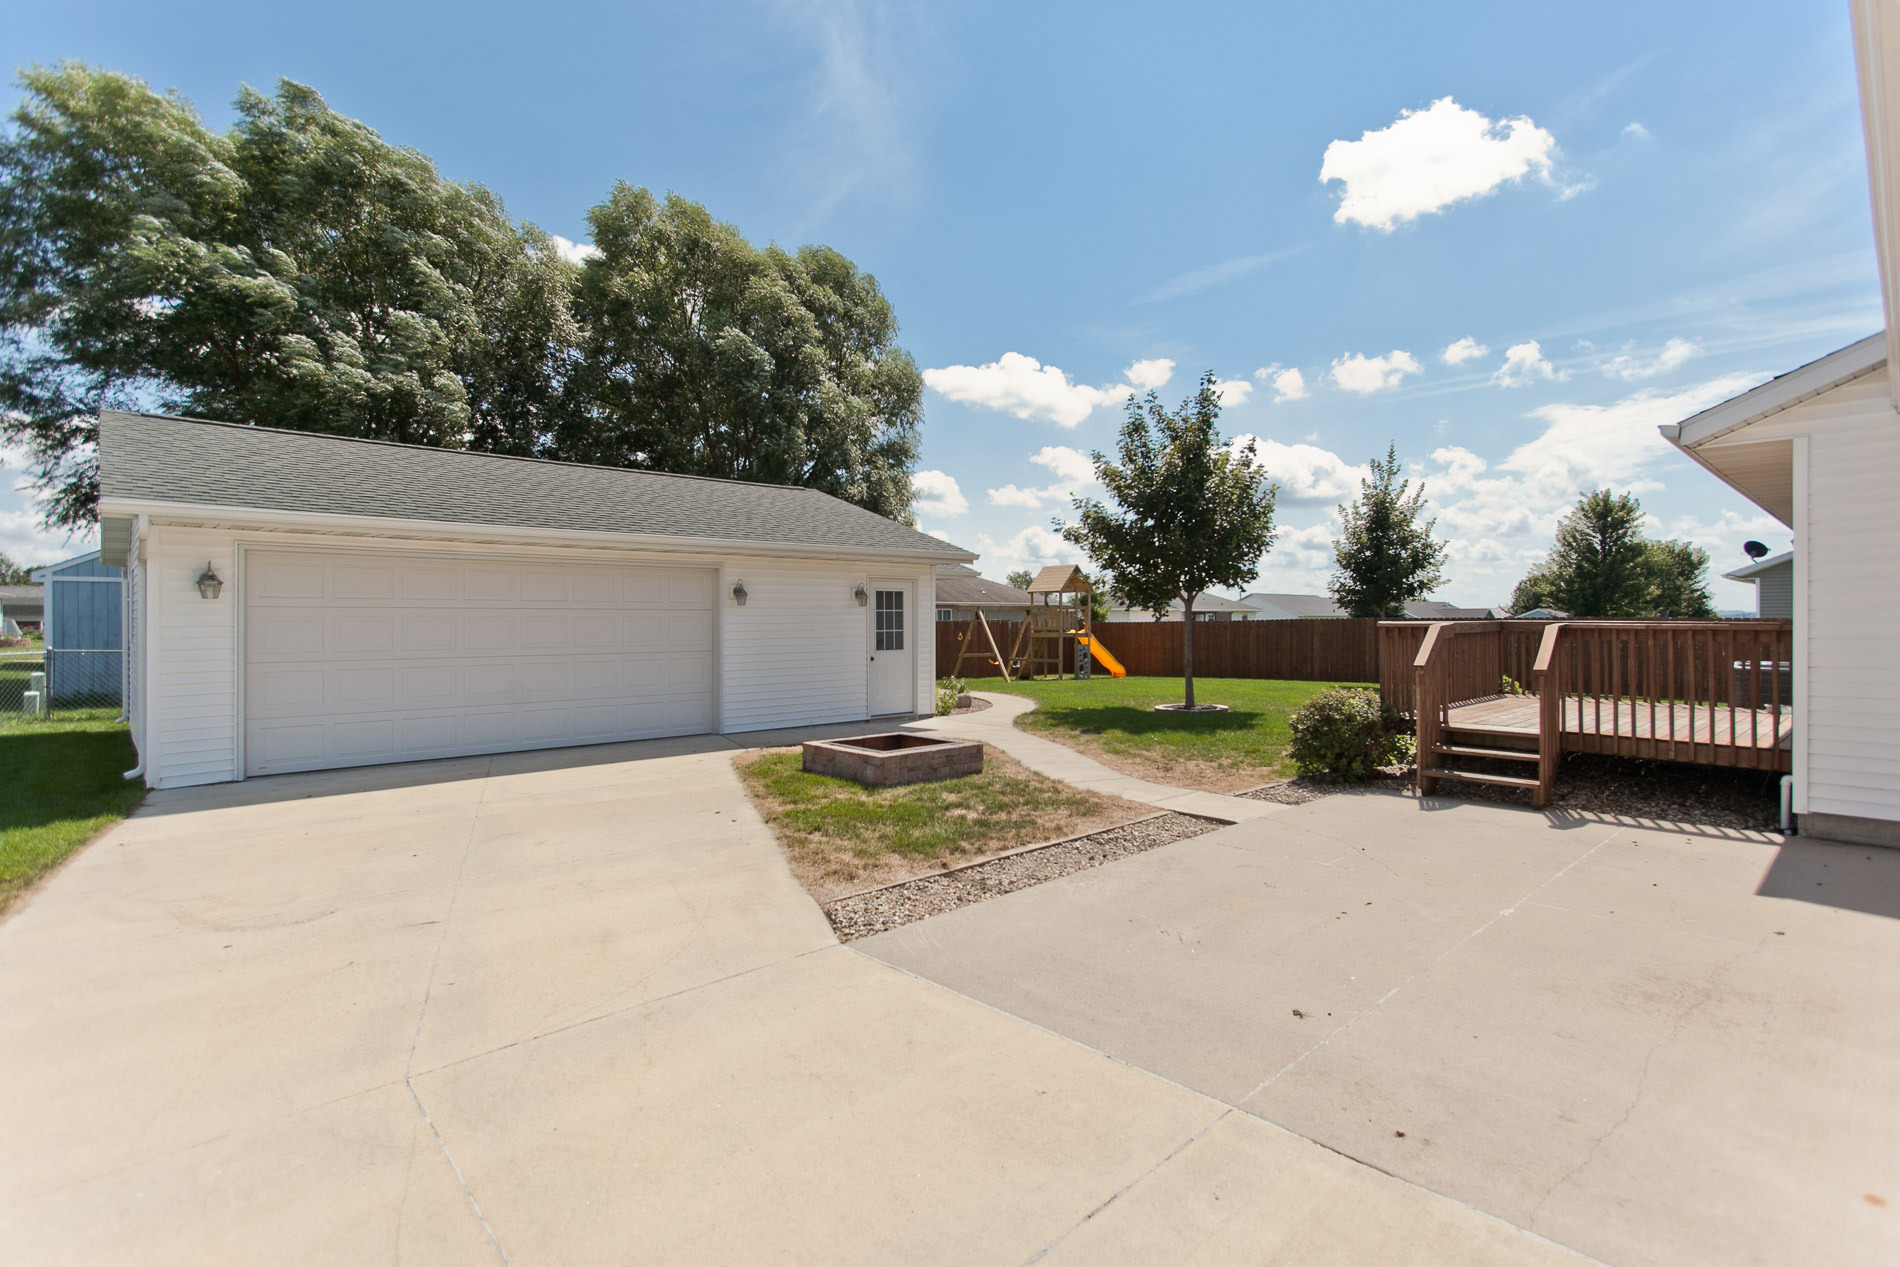 Detached Garage at 406 Agape Avenue Urbana, Iowa 52345